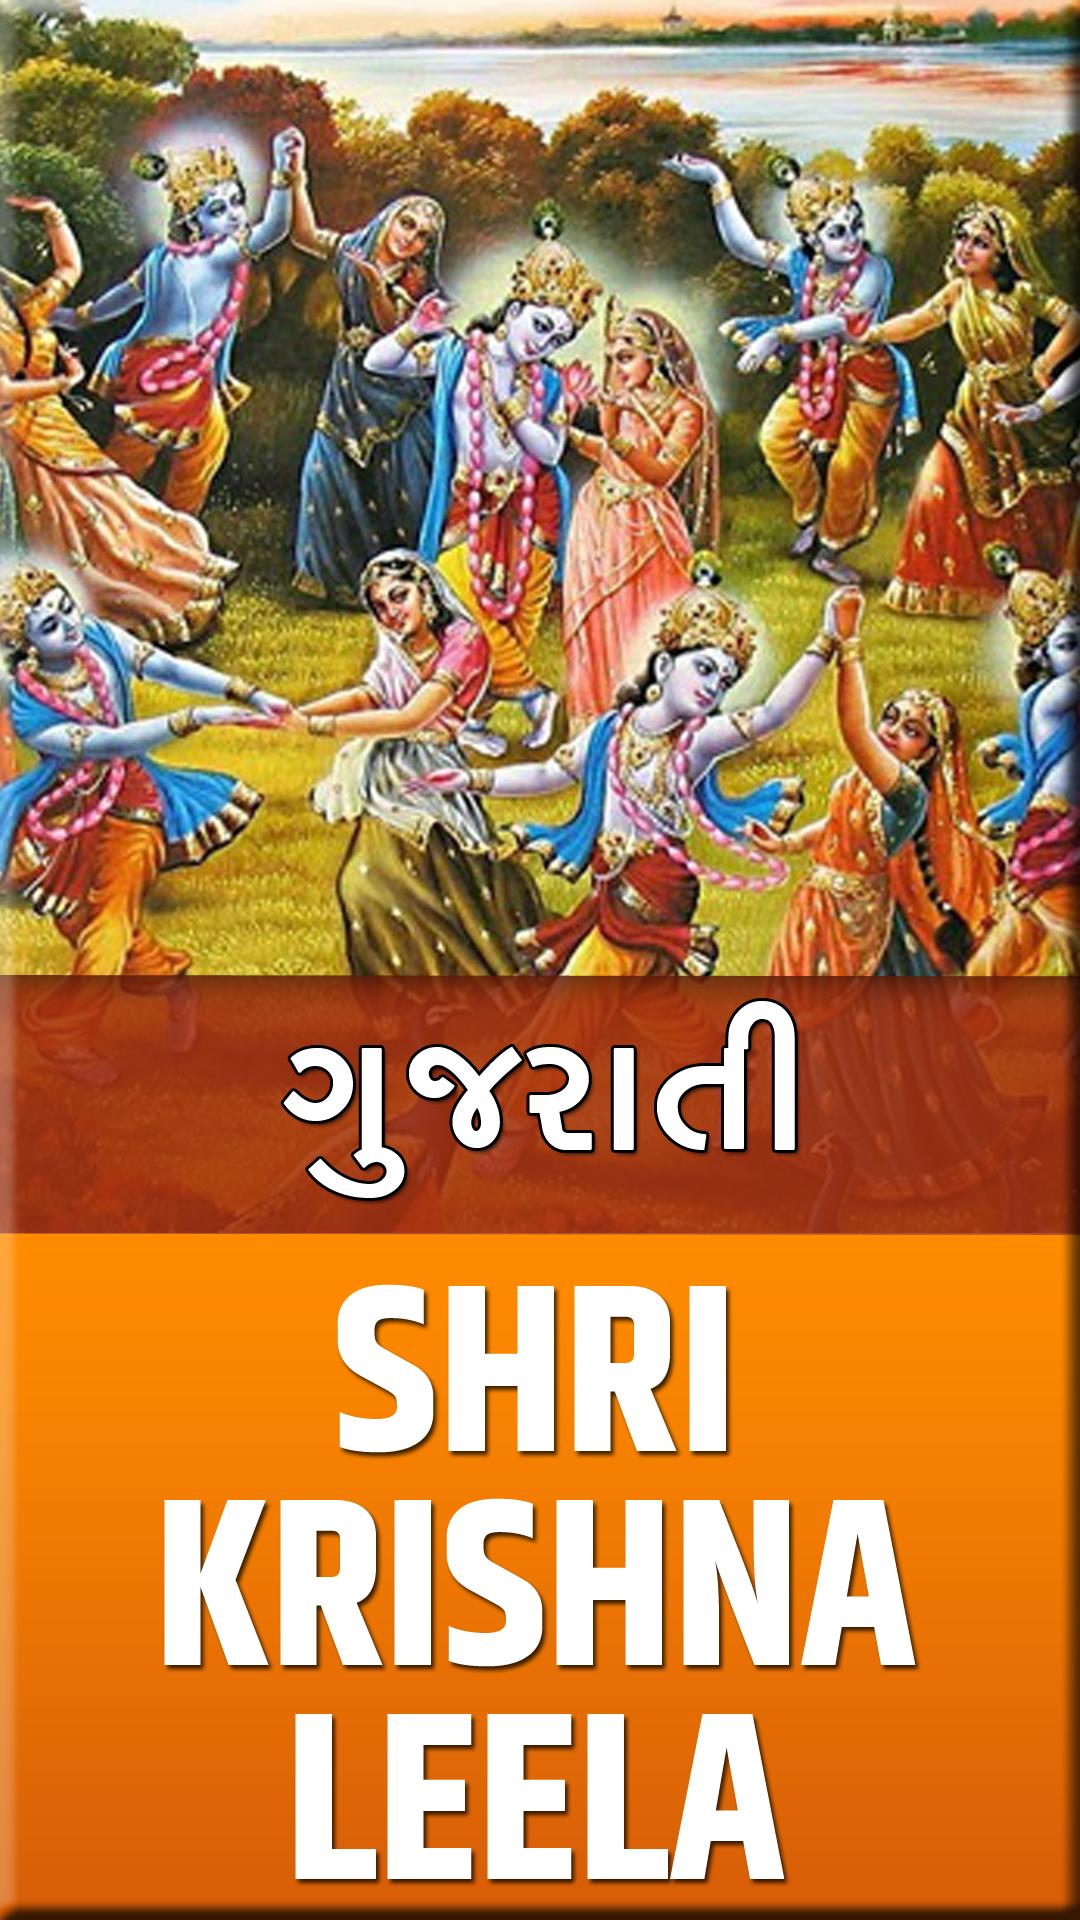 shri krishna leela - Gujarati Bhajan for Android - APK Download